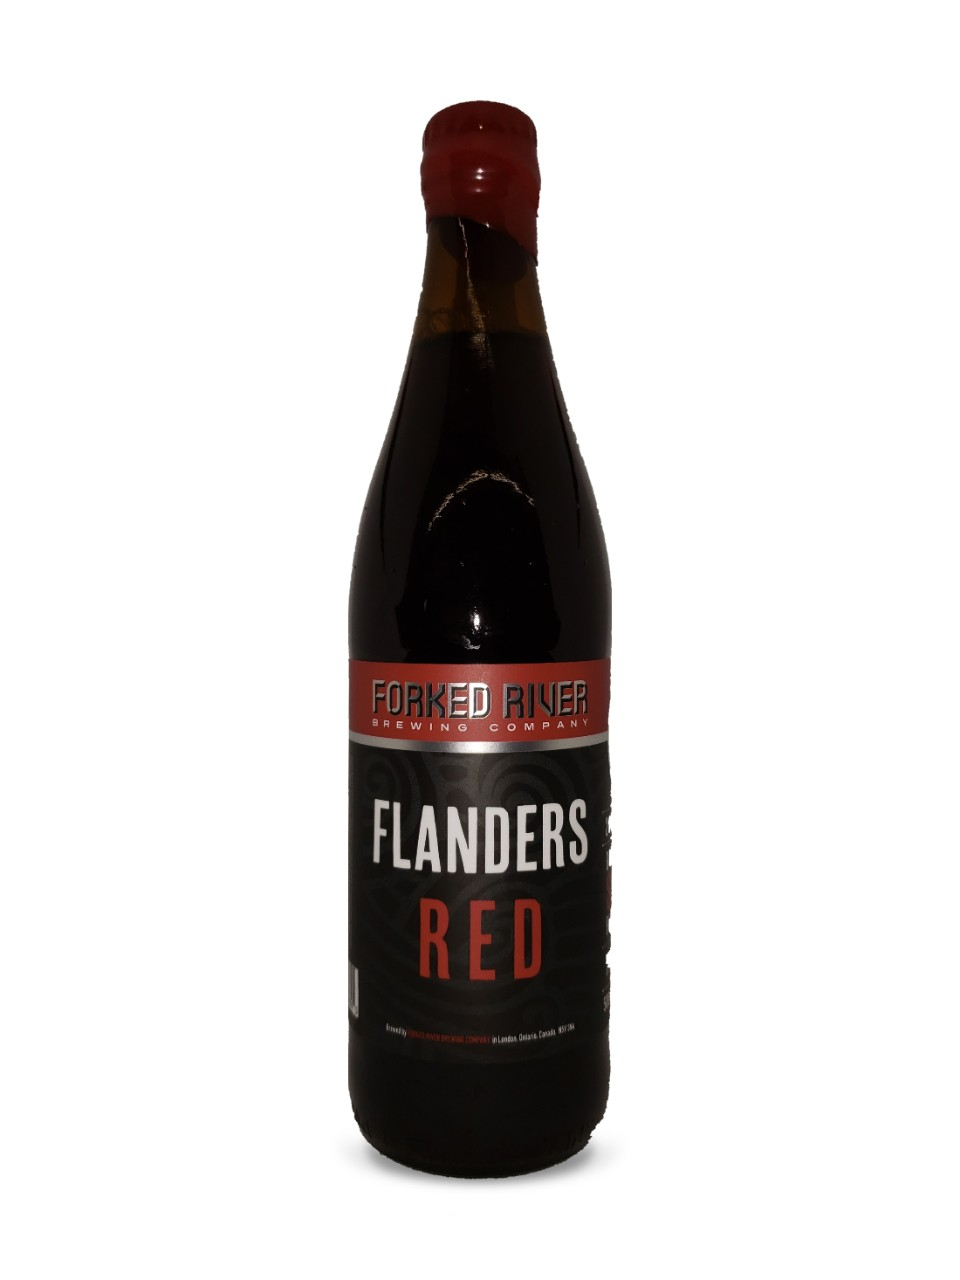 Forked River Flanders Red